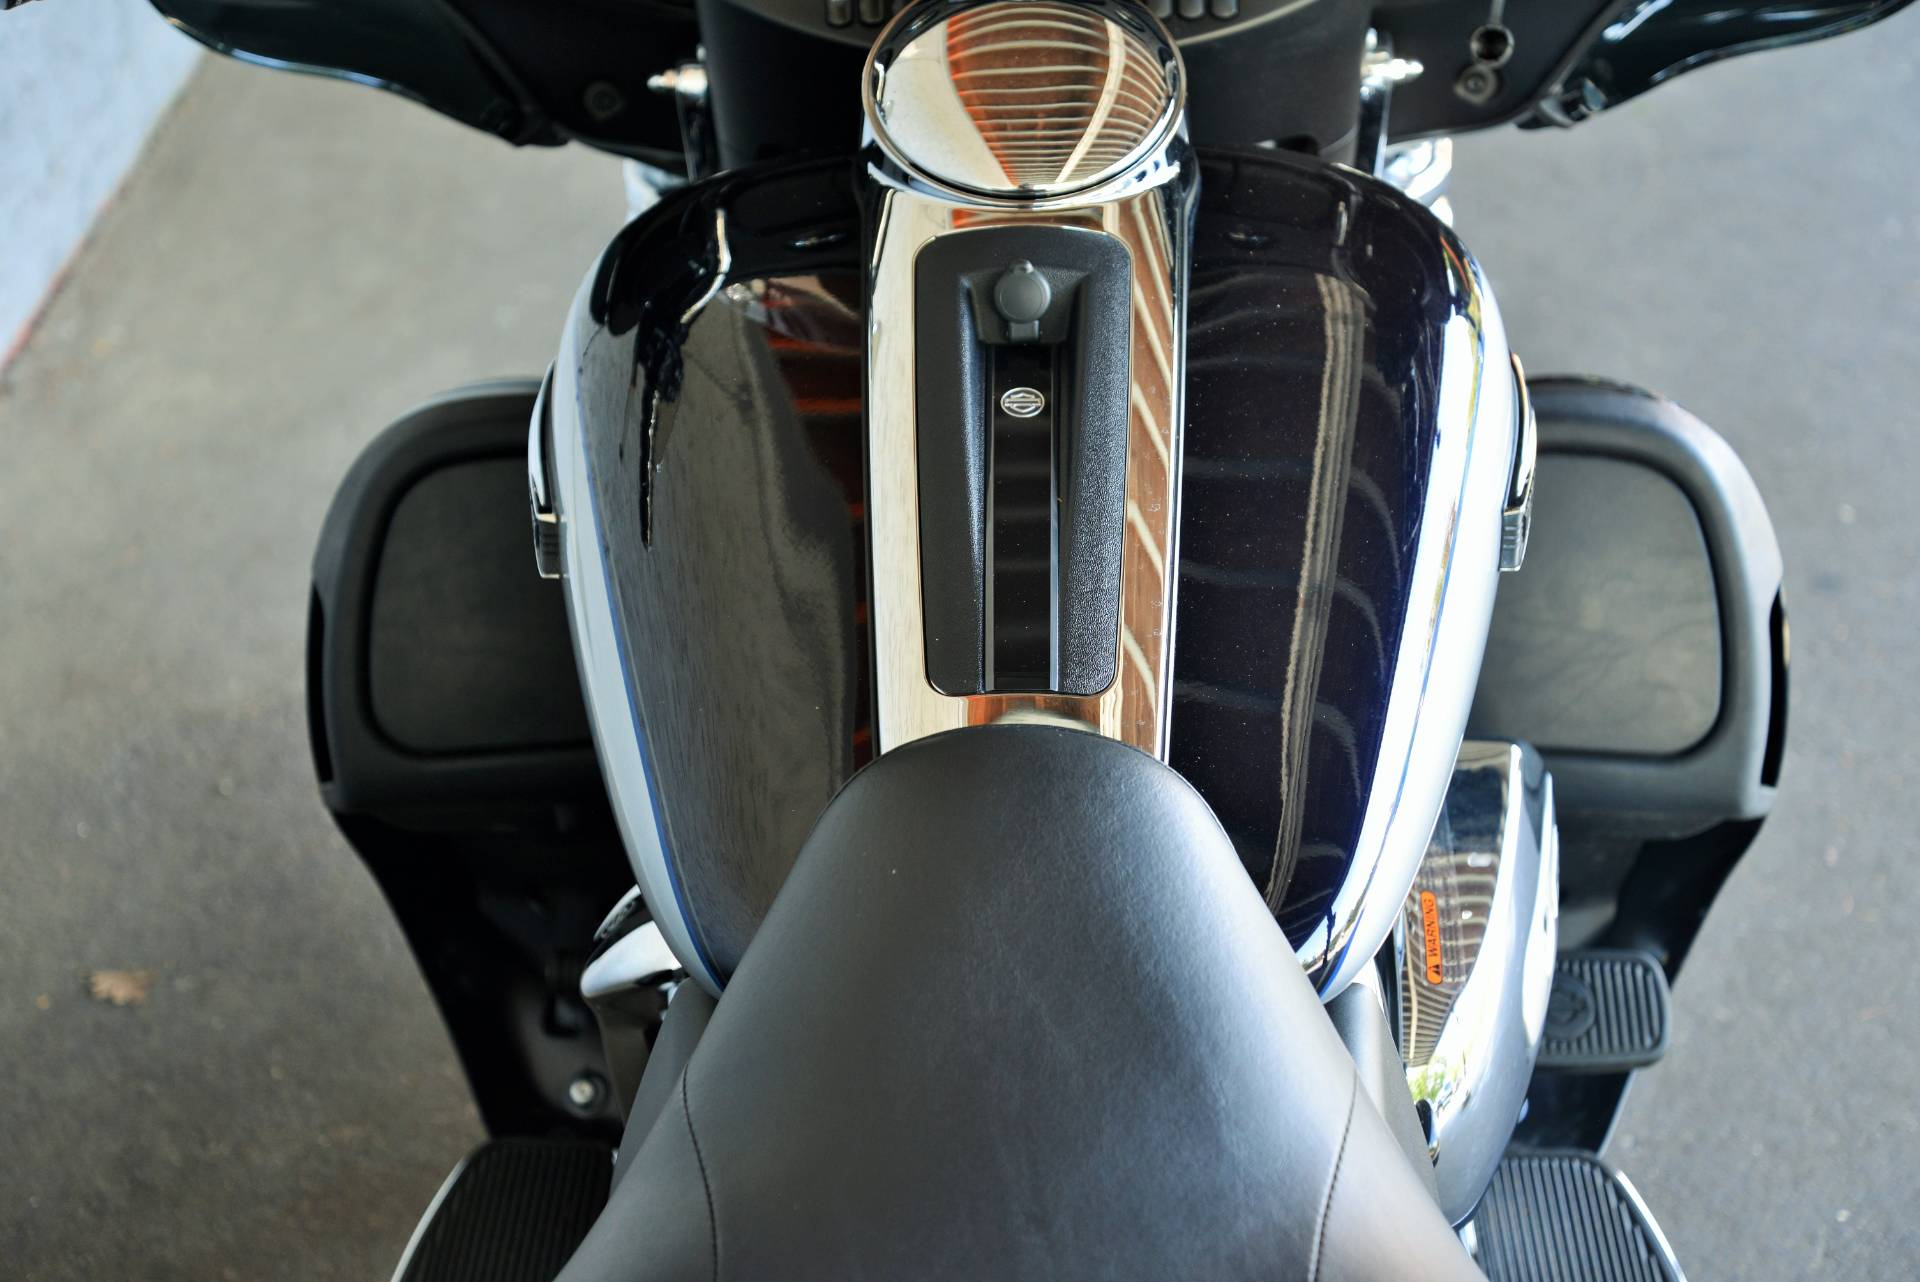 2019 Harley-Davidson TRI GLIDE ULTRA in Lakewood, New Jersey - Photo 10